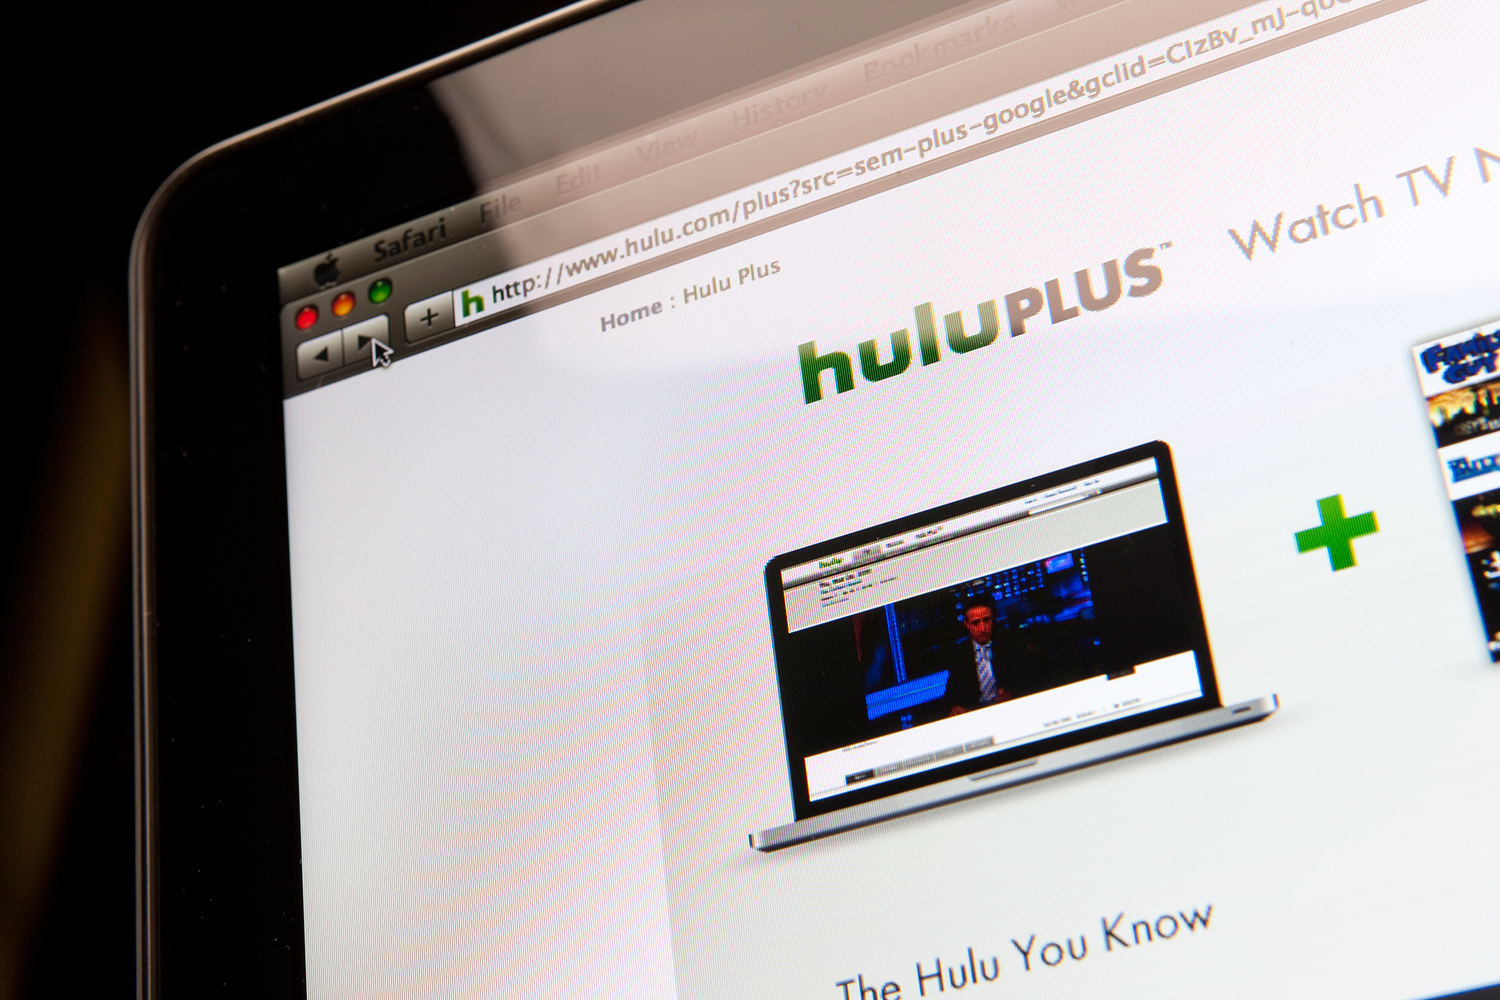 Hulu Drops Subscription Price By 2 Dollars